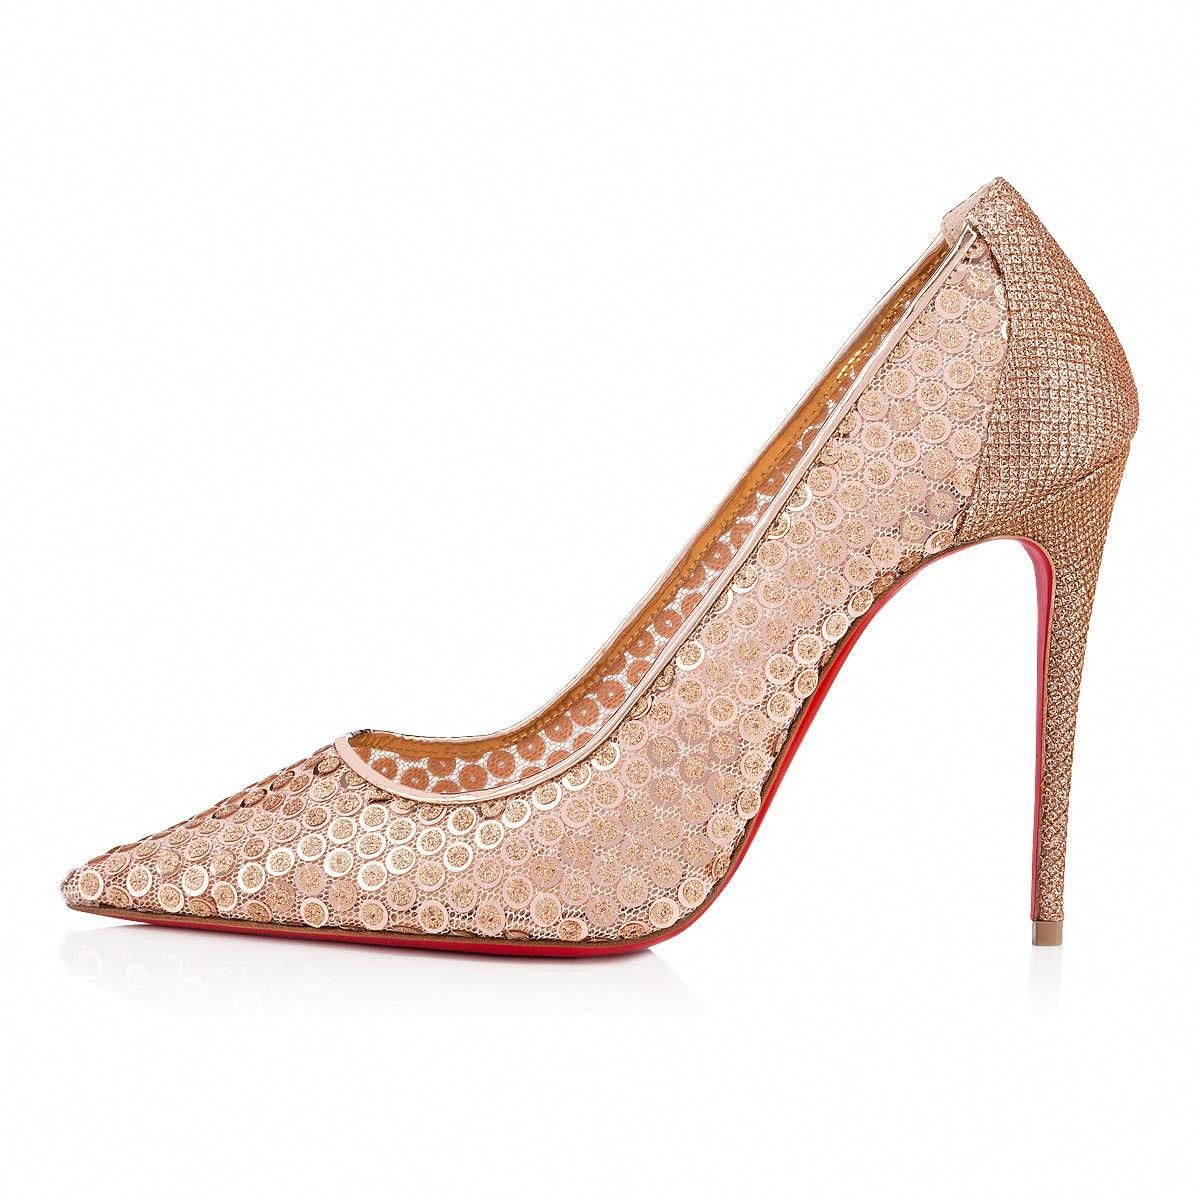 180c73a6f01d Shoes - Lace 554 - Christian Louboutin  ChristianLouboutin ...